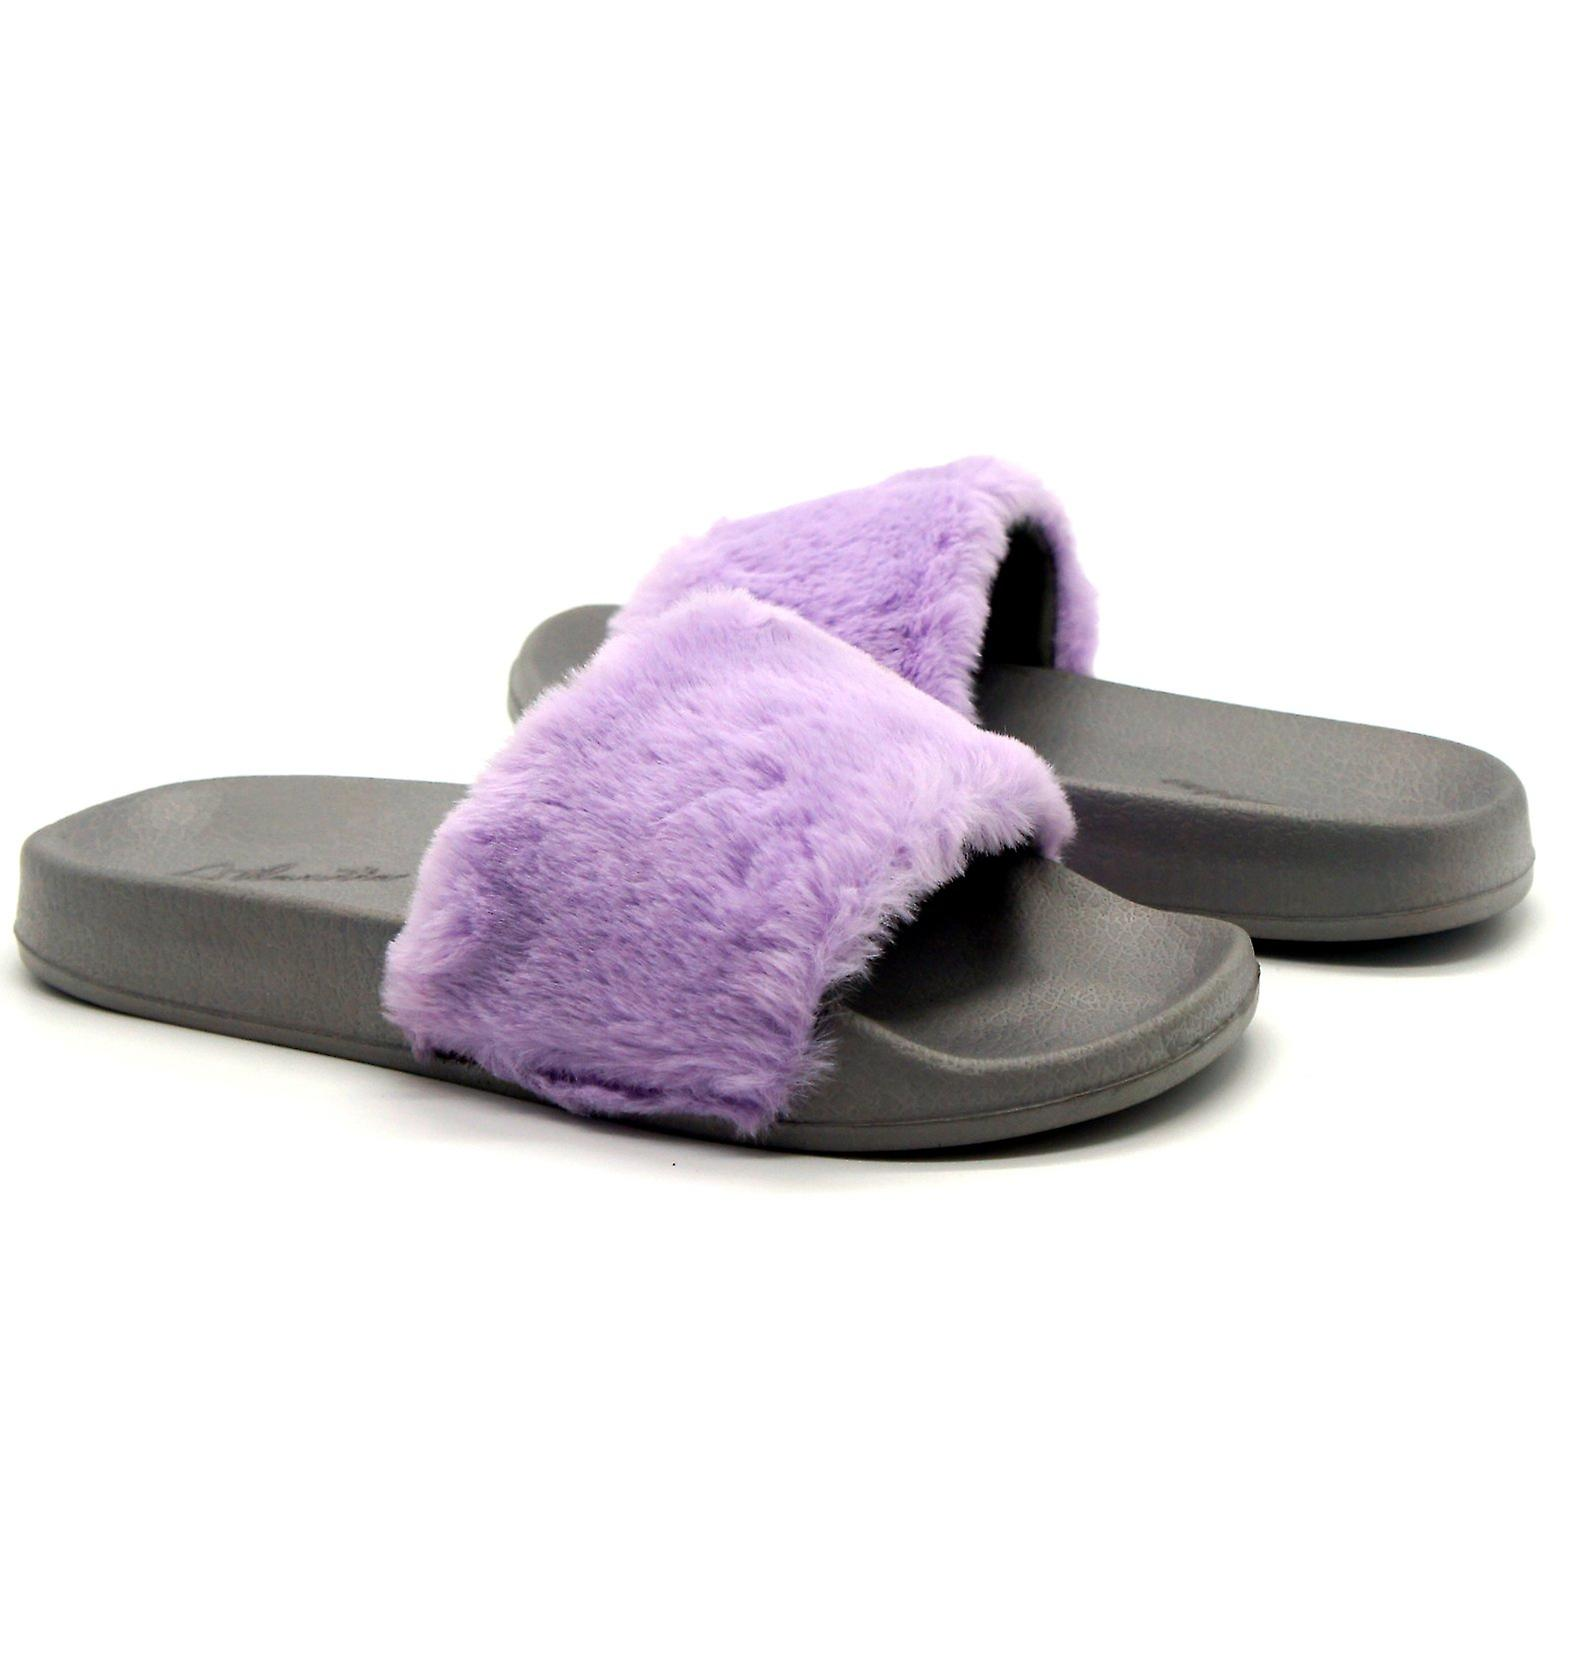 Atlantis Shoes Women Supportive Cushioned Comfortable Sandals Sliders Fluffy Purple